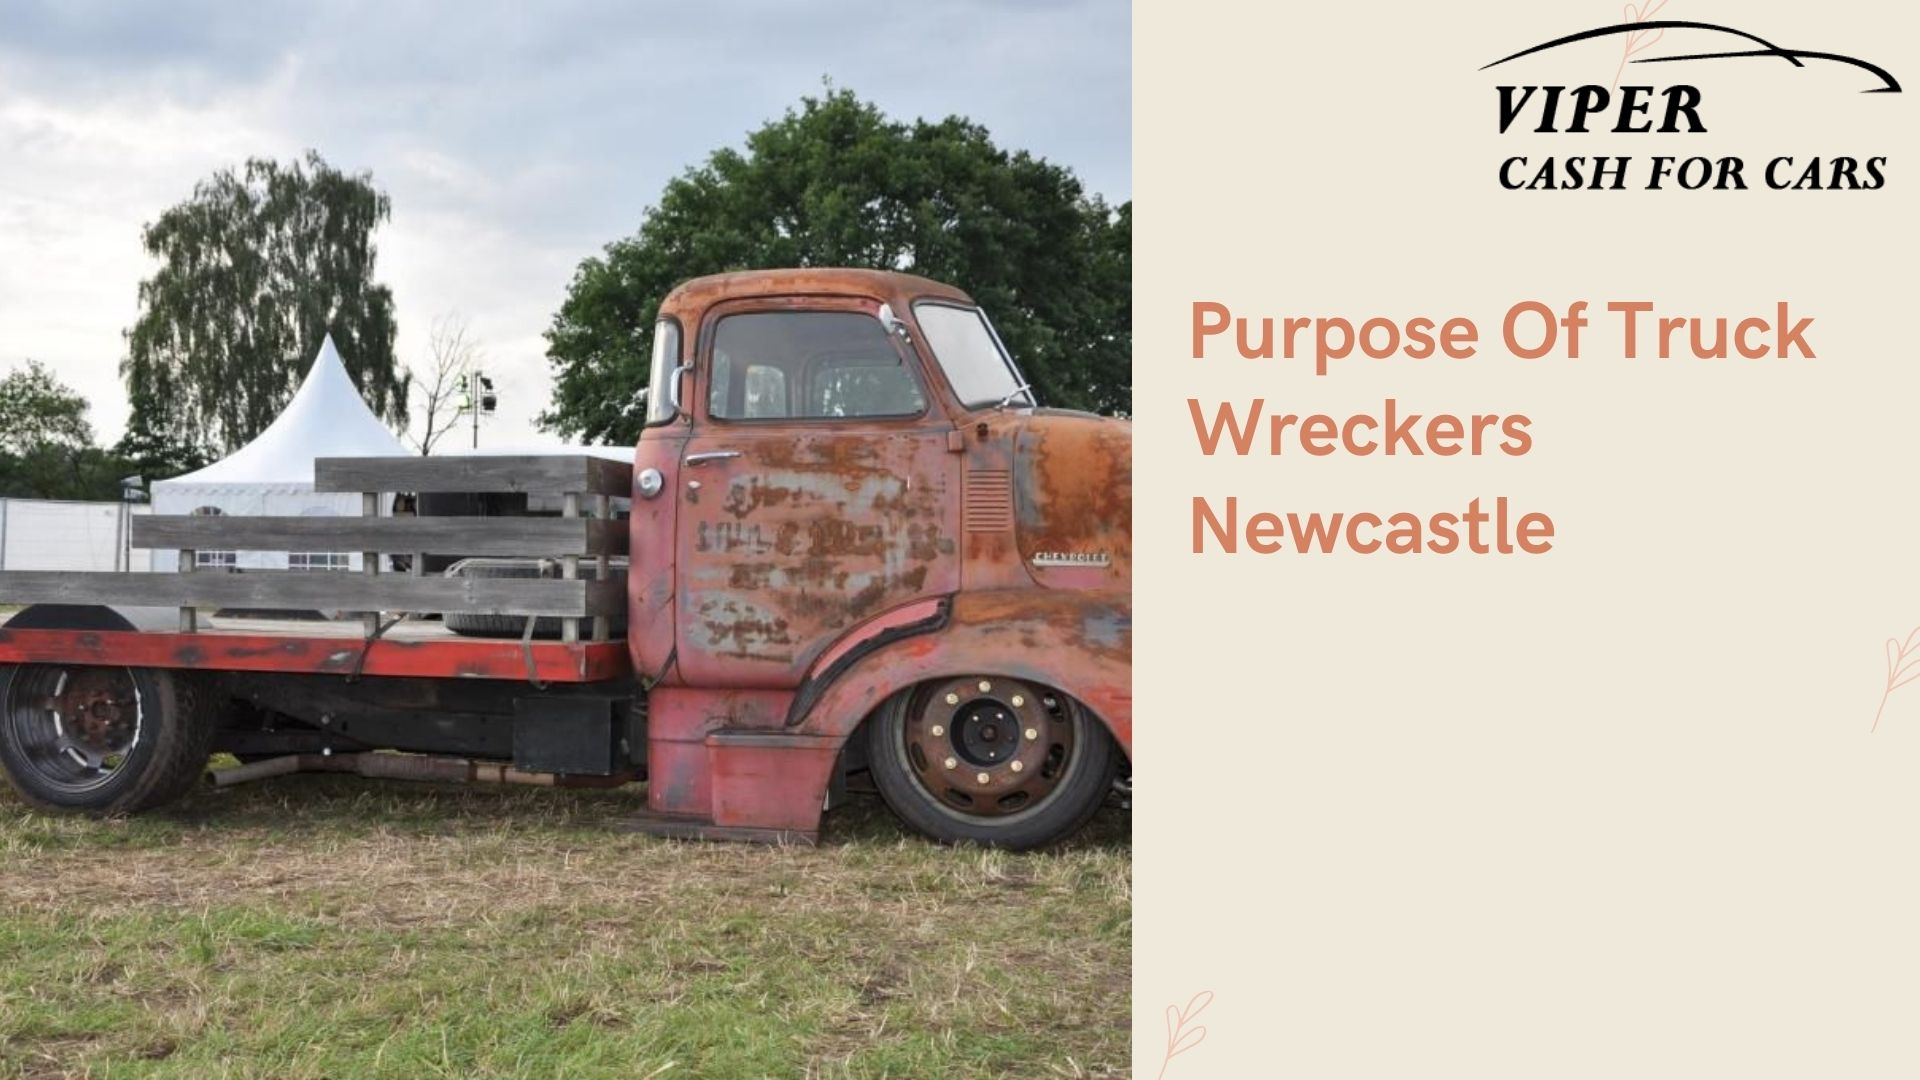 What Is The Purpose Of Truck Wreckers Newcastle?